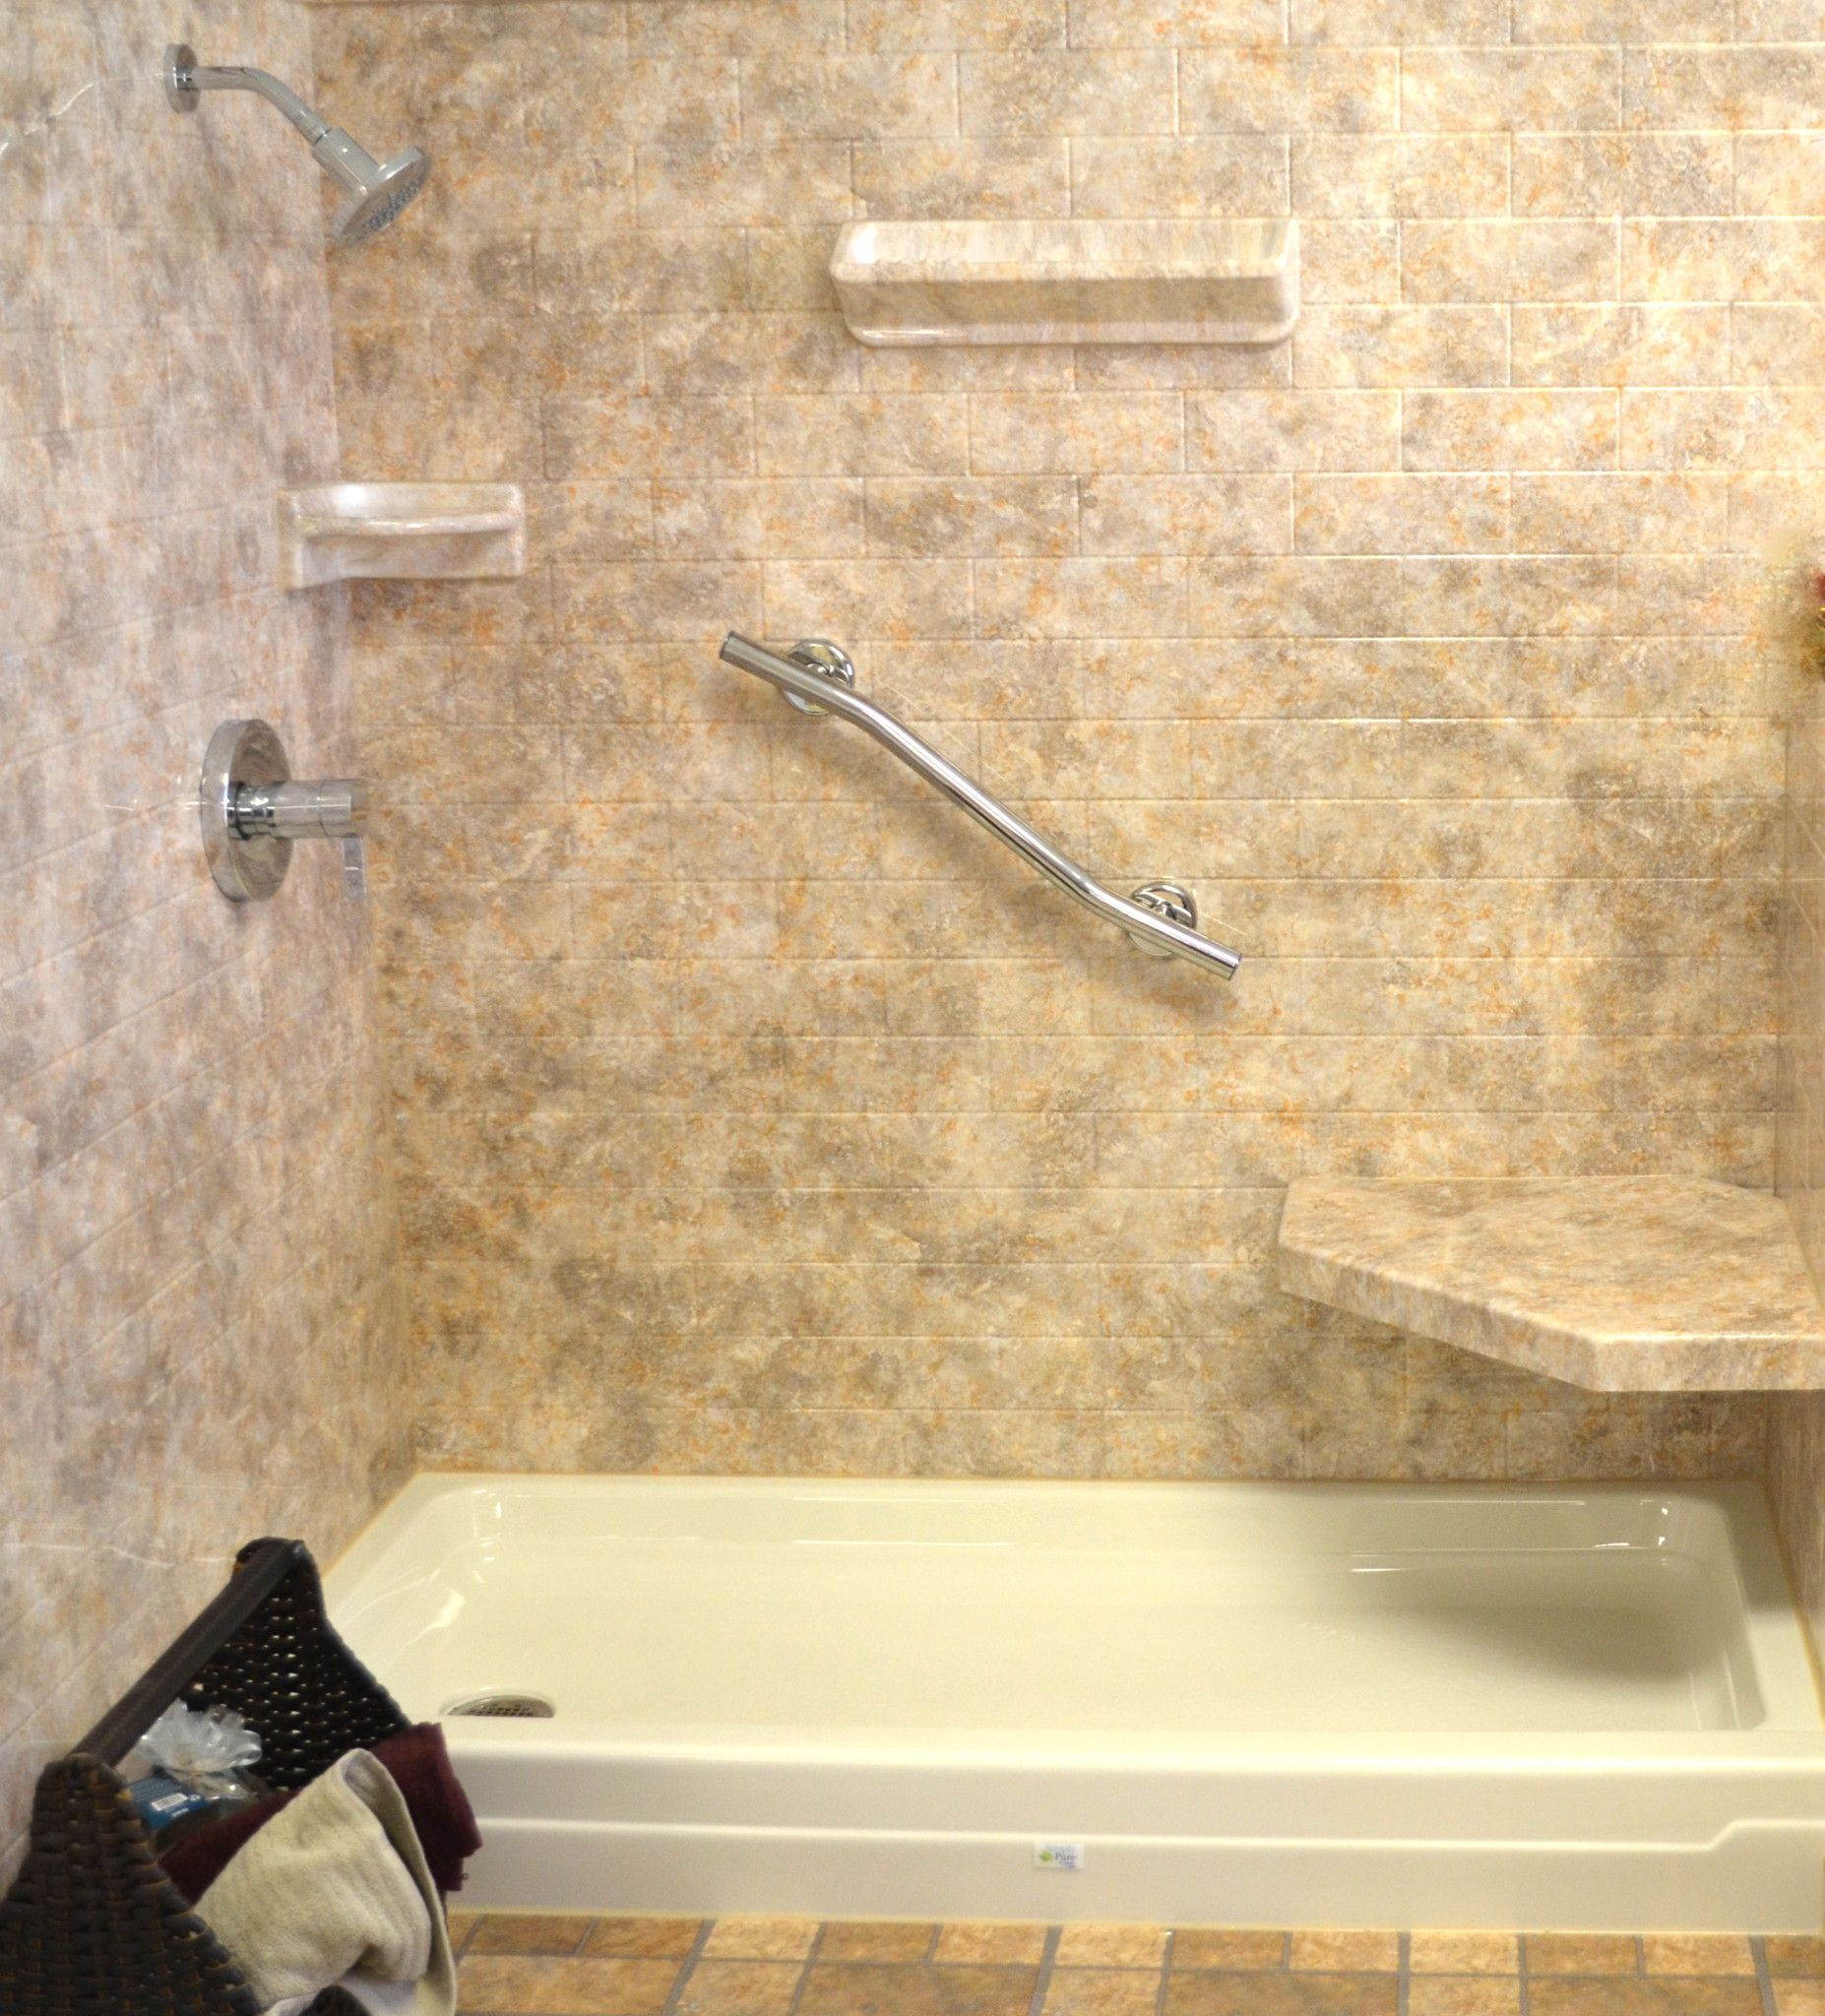 Acrylic Vs. Tile For Shower Walls And Tub Enclosures.